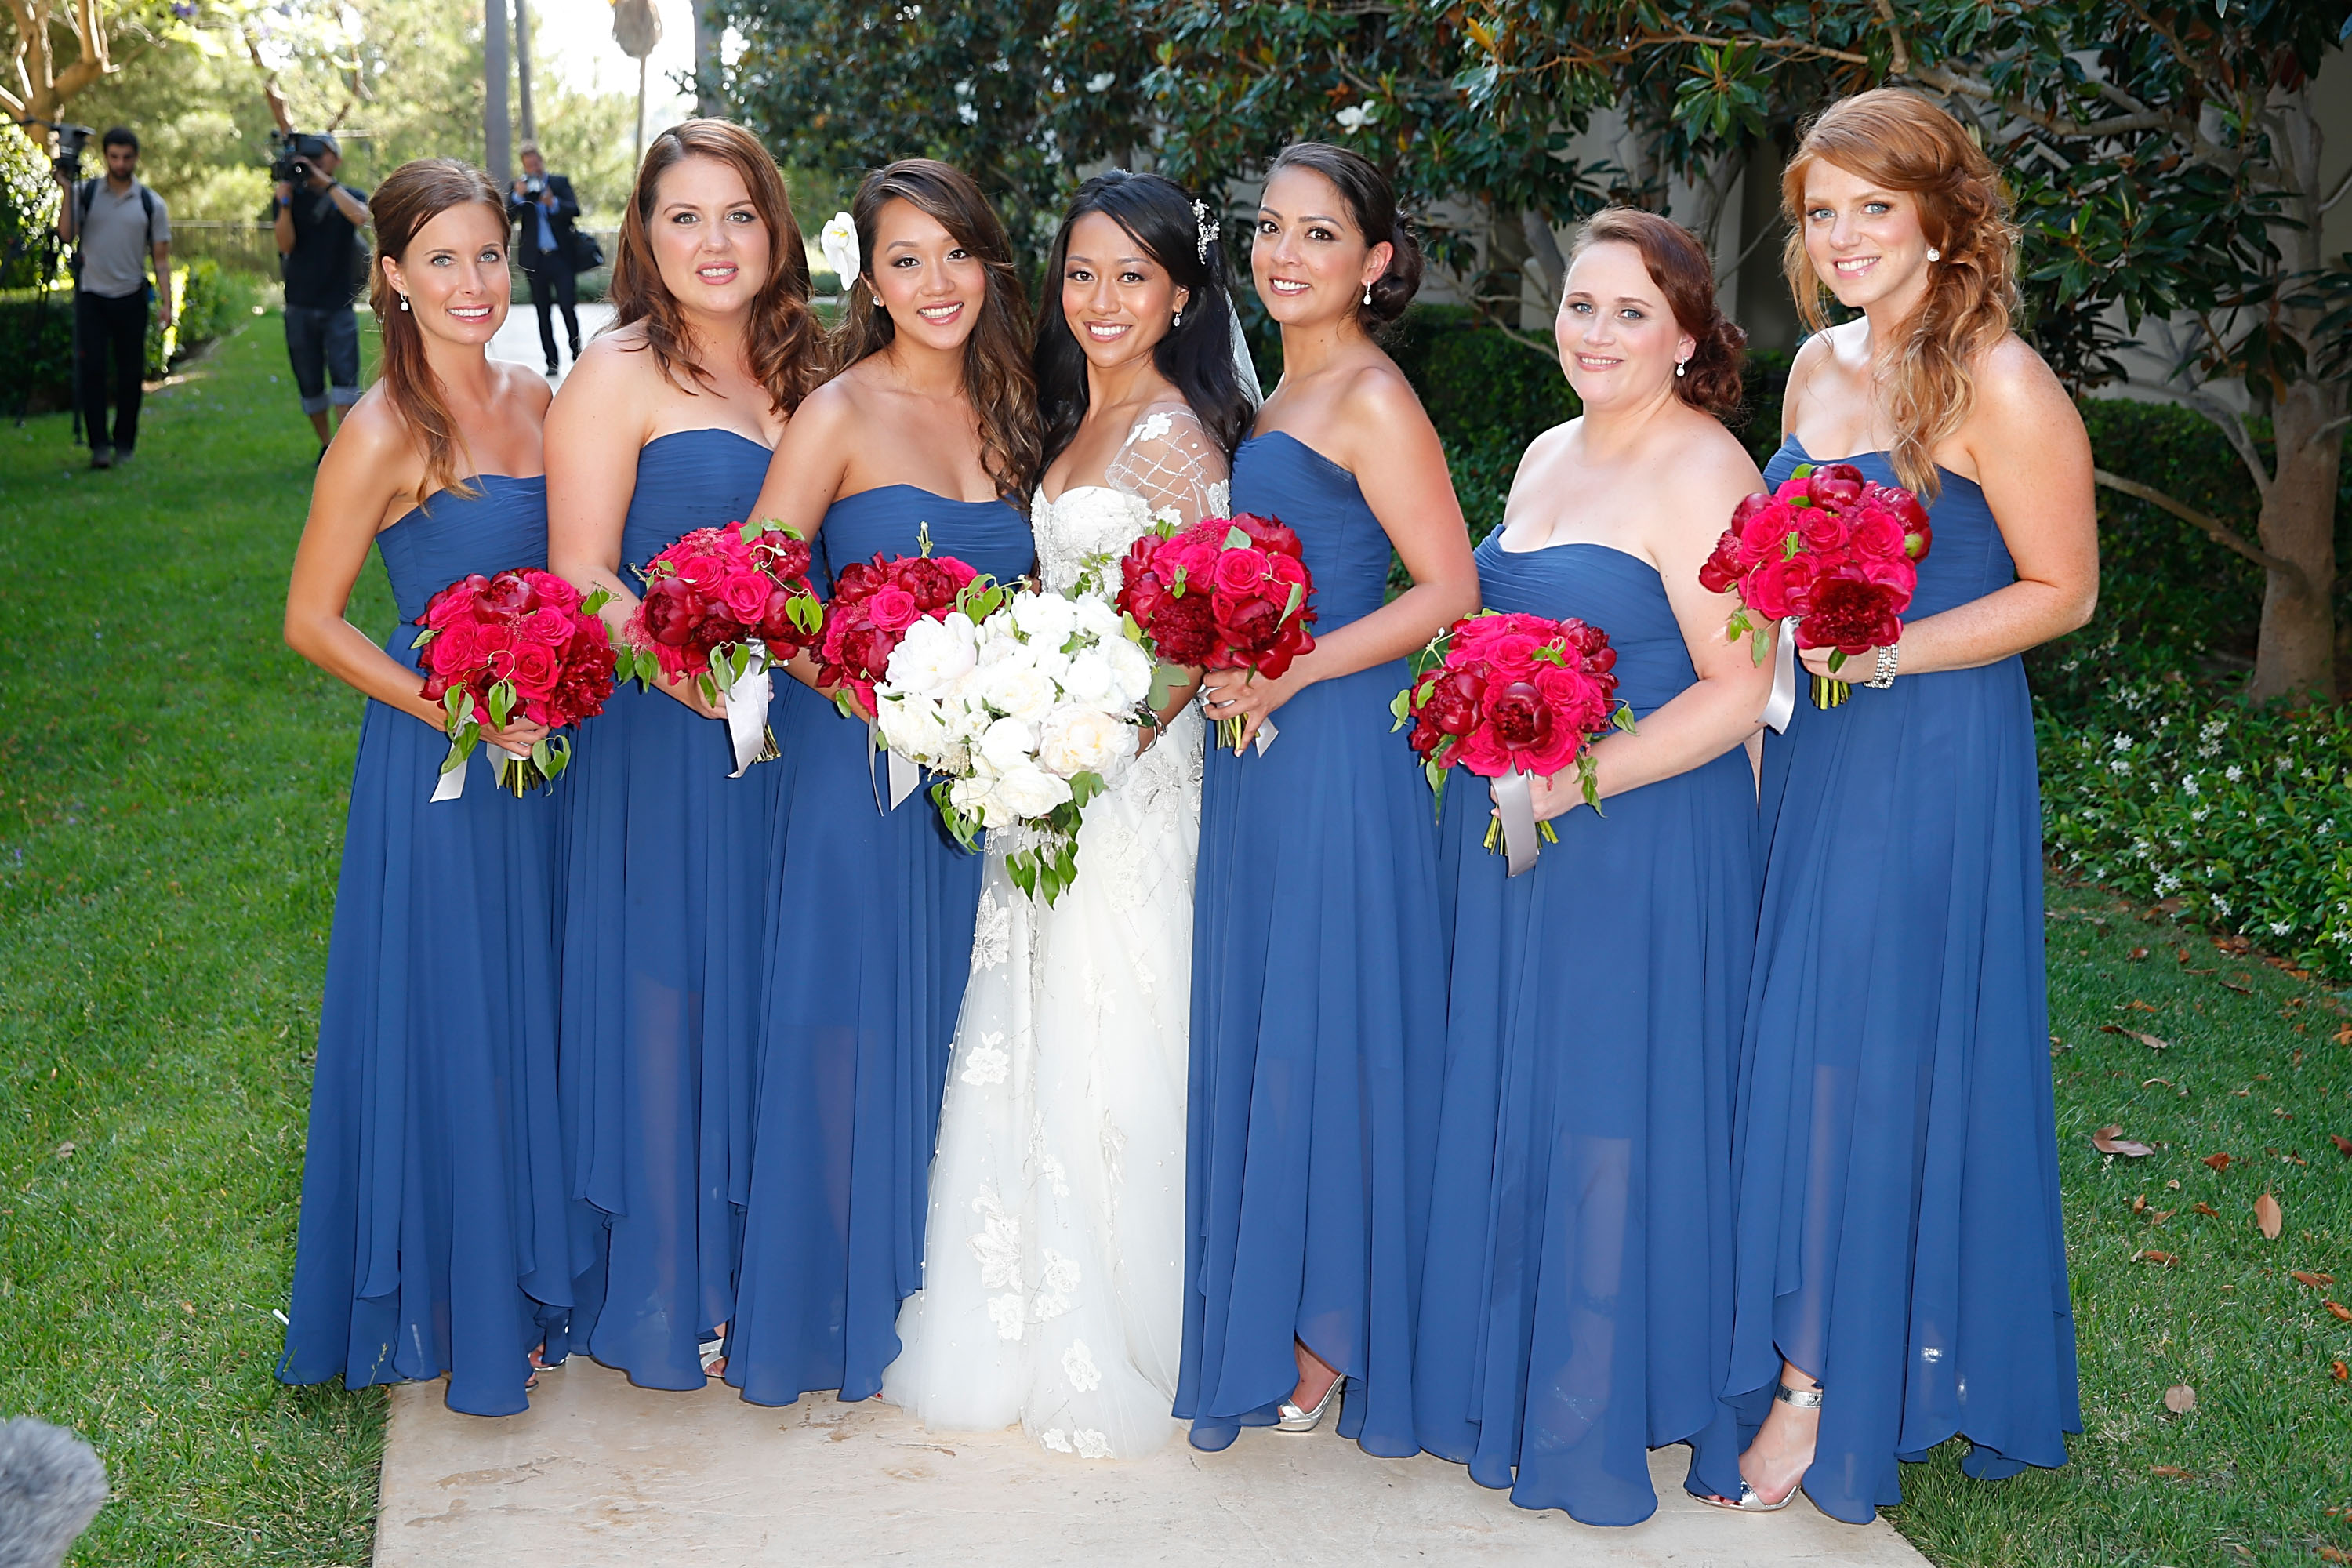 6 reasons bridesmaid dresses are the absolute worst and should be joe scarnicigetty images entertainmentgetty images junglespirit Gallery